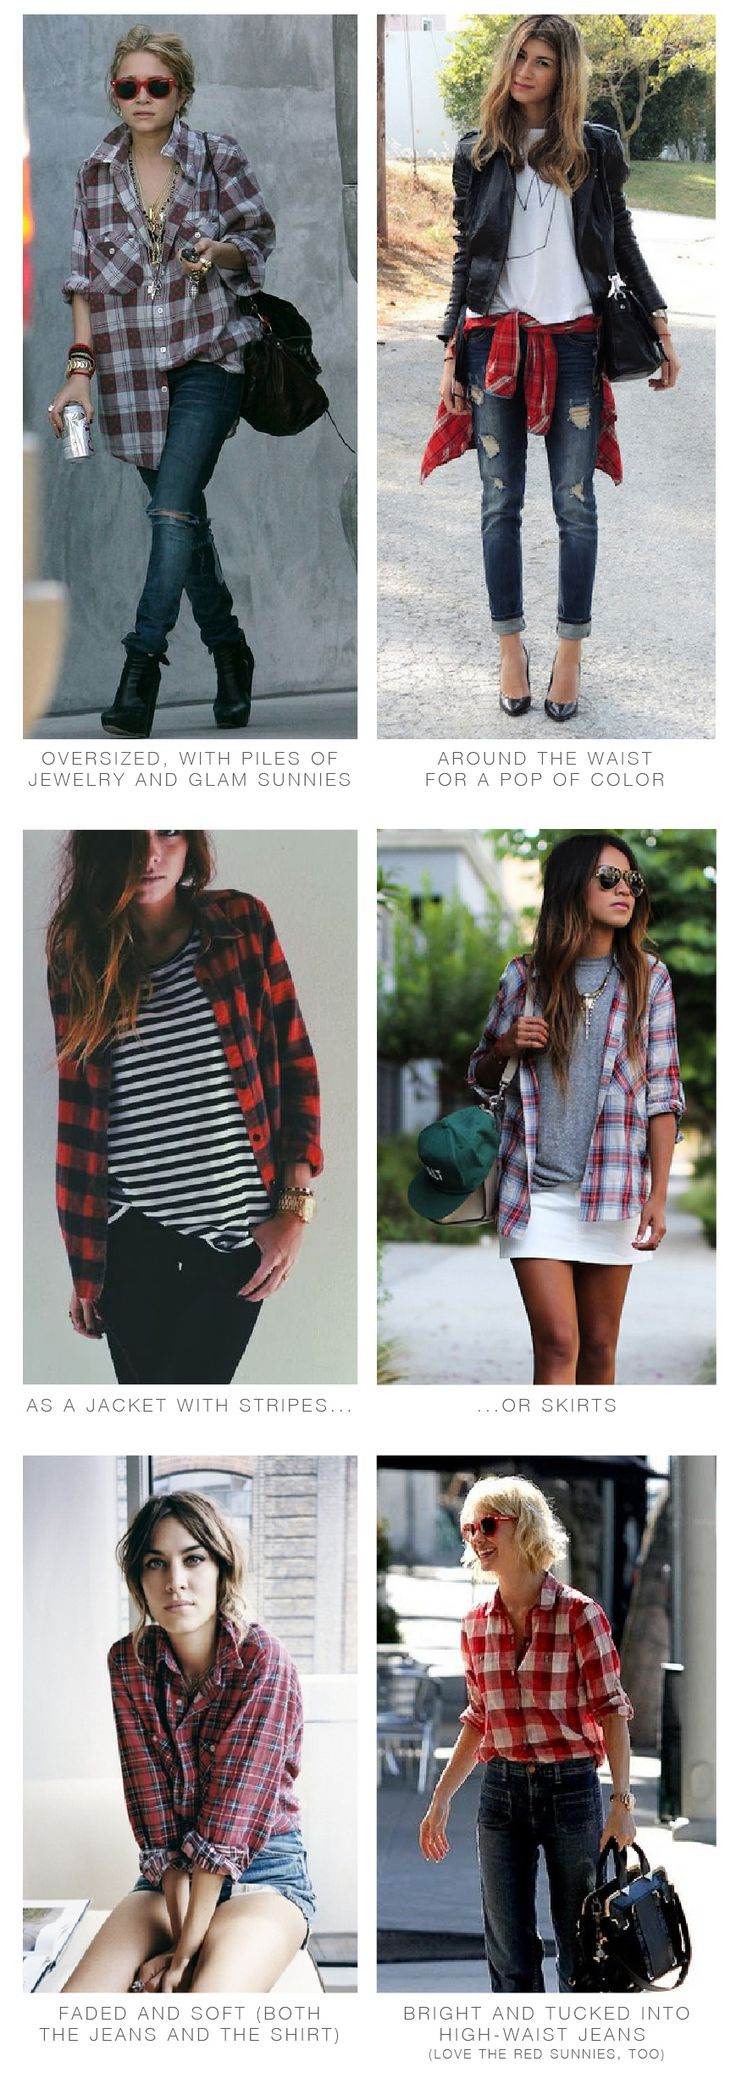 plaid shirt inspiration and suggestions from The Mom Edit